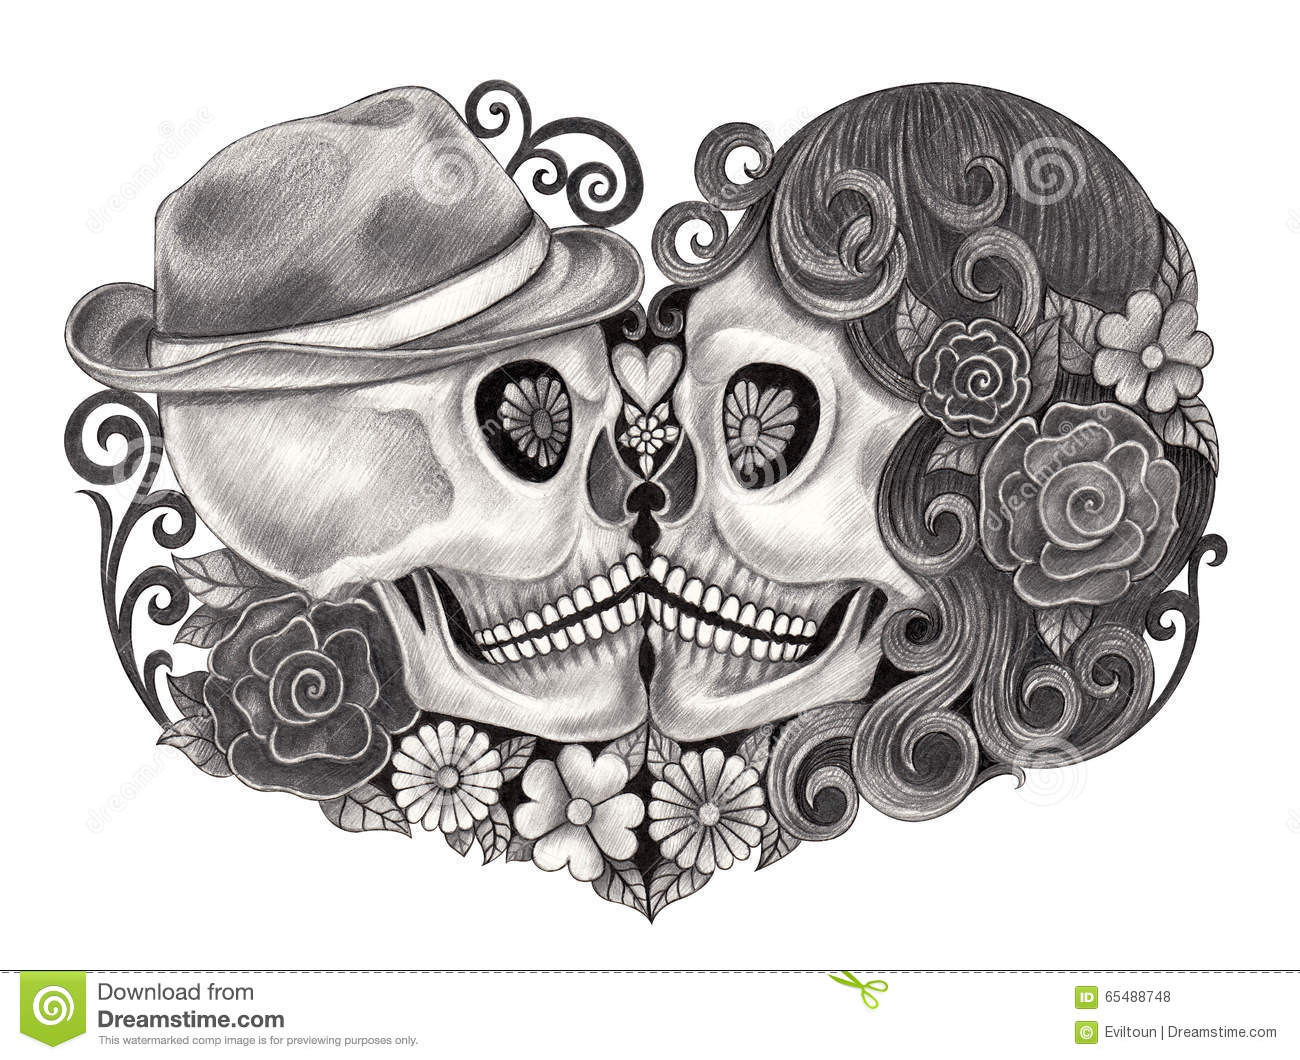 b9a77cacf Art design skull wedding love smiley face day of the dead festival. hand  pencil drawing on paper.